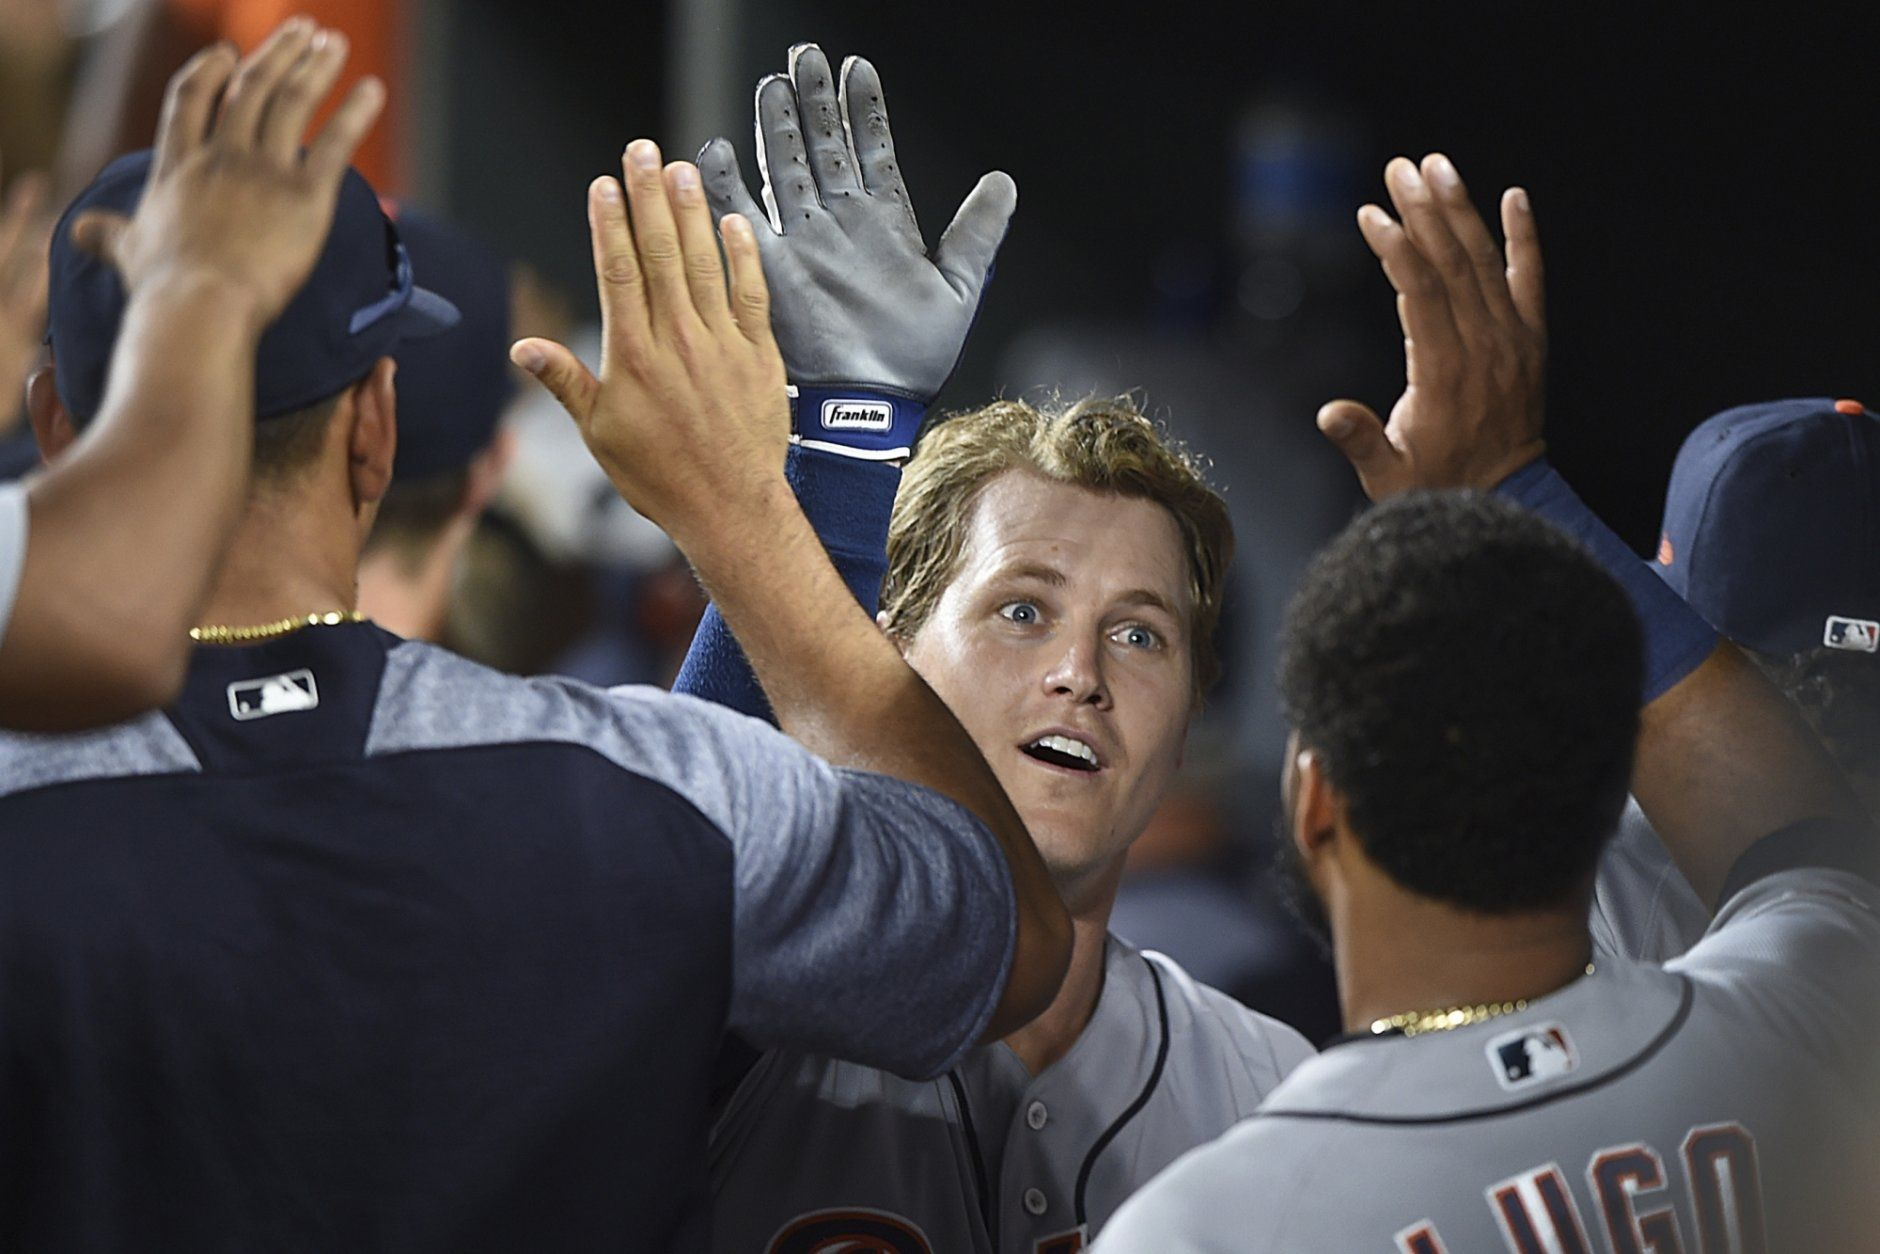 Detroit Tigers' Brandon Dixon celebrates in the dugout after hitting a two-run home run against the Baltimore Orioles during the ninth inning of a baseball game Wednesday, May 29, 2019, in Baltimore. The Tigers won 4-2.(AP Photo/Gail Burton)